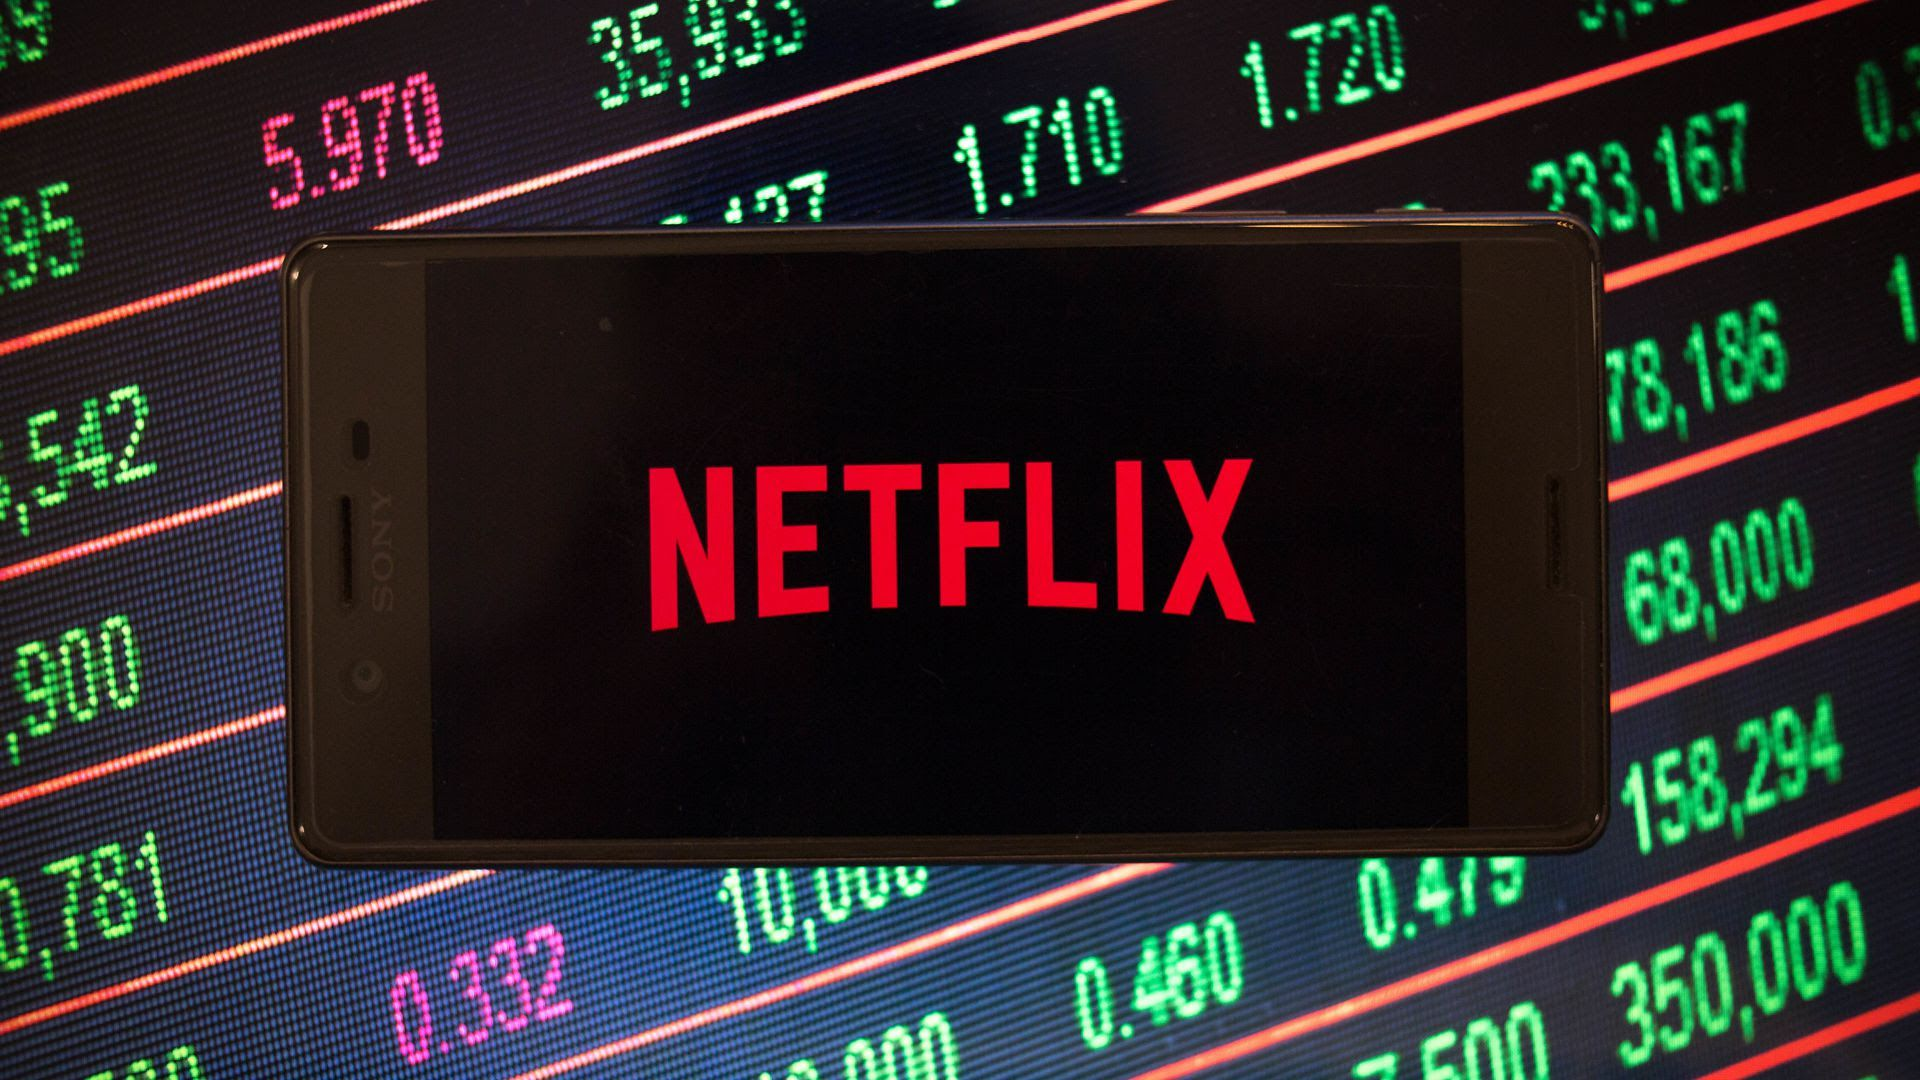 An illustration of the Netflix logo on a phone, set against a screen of numbers from the stock market